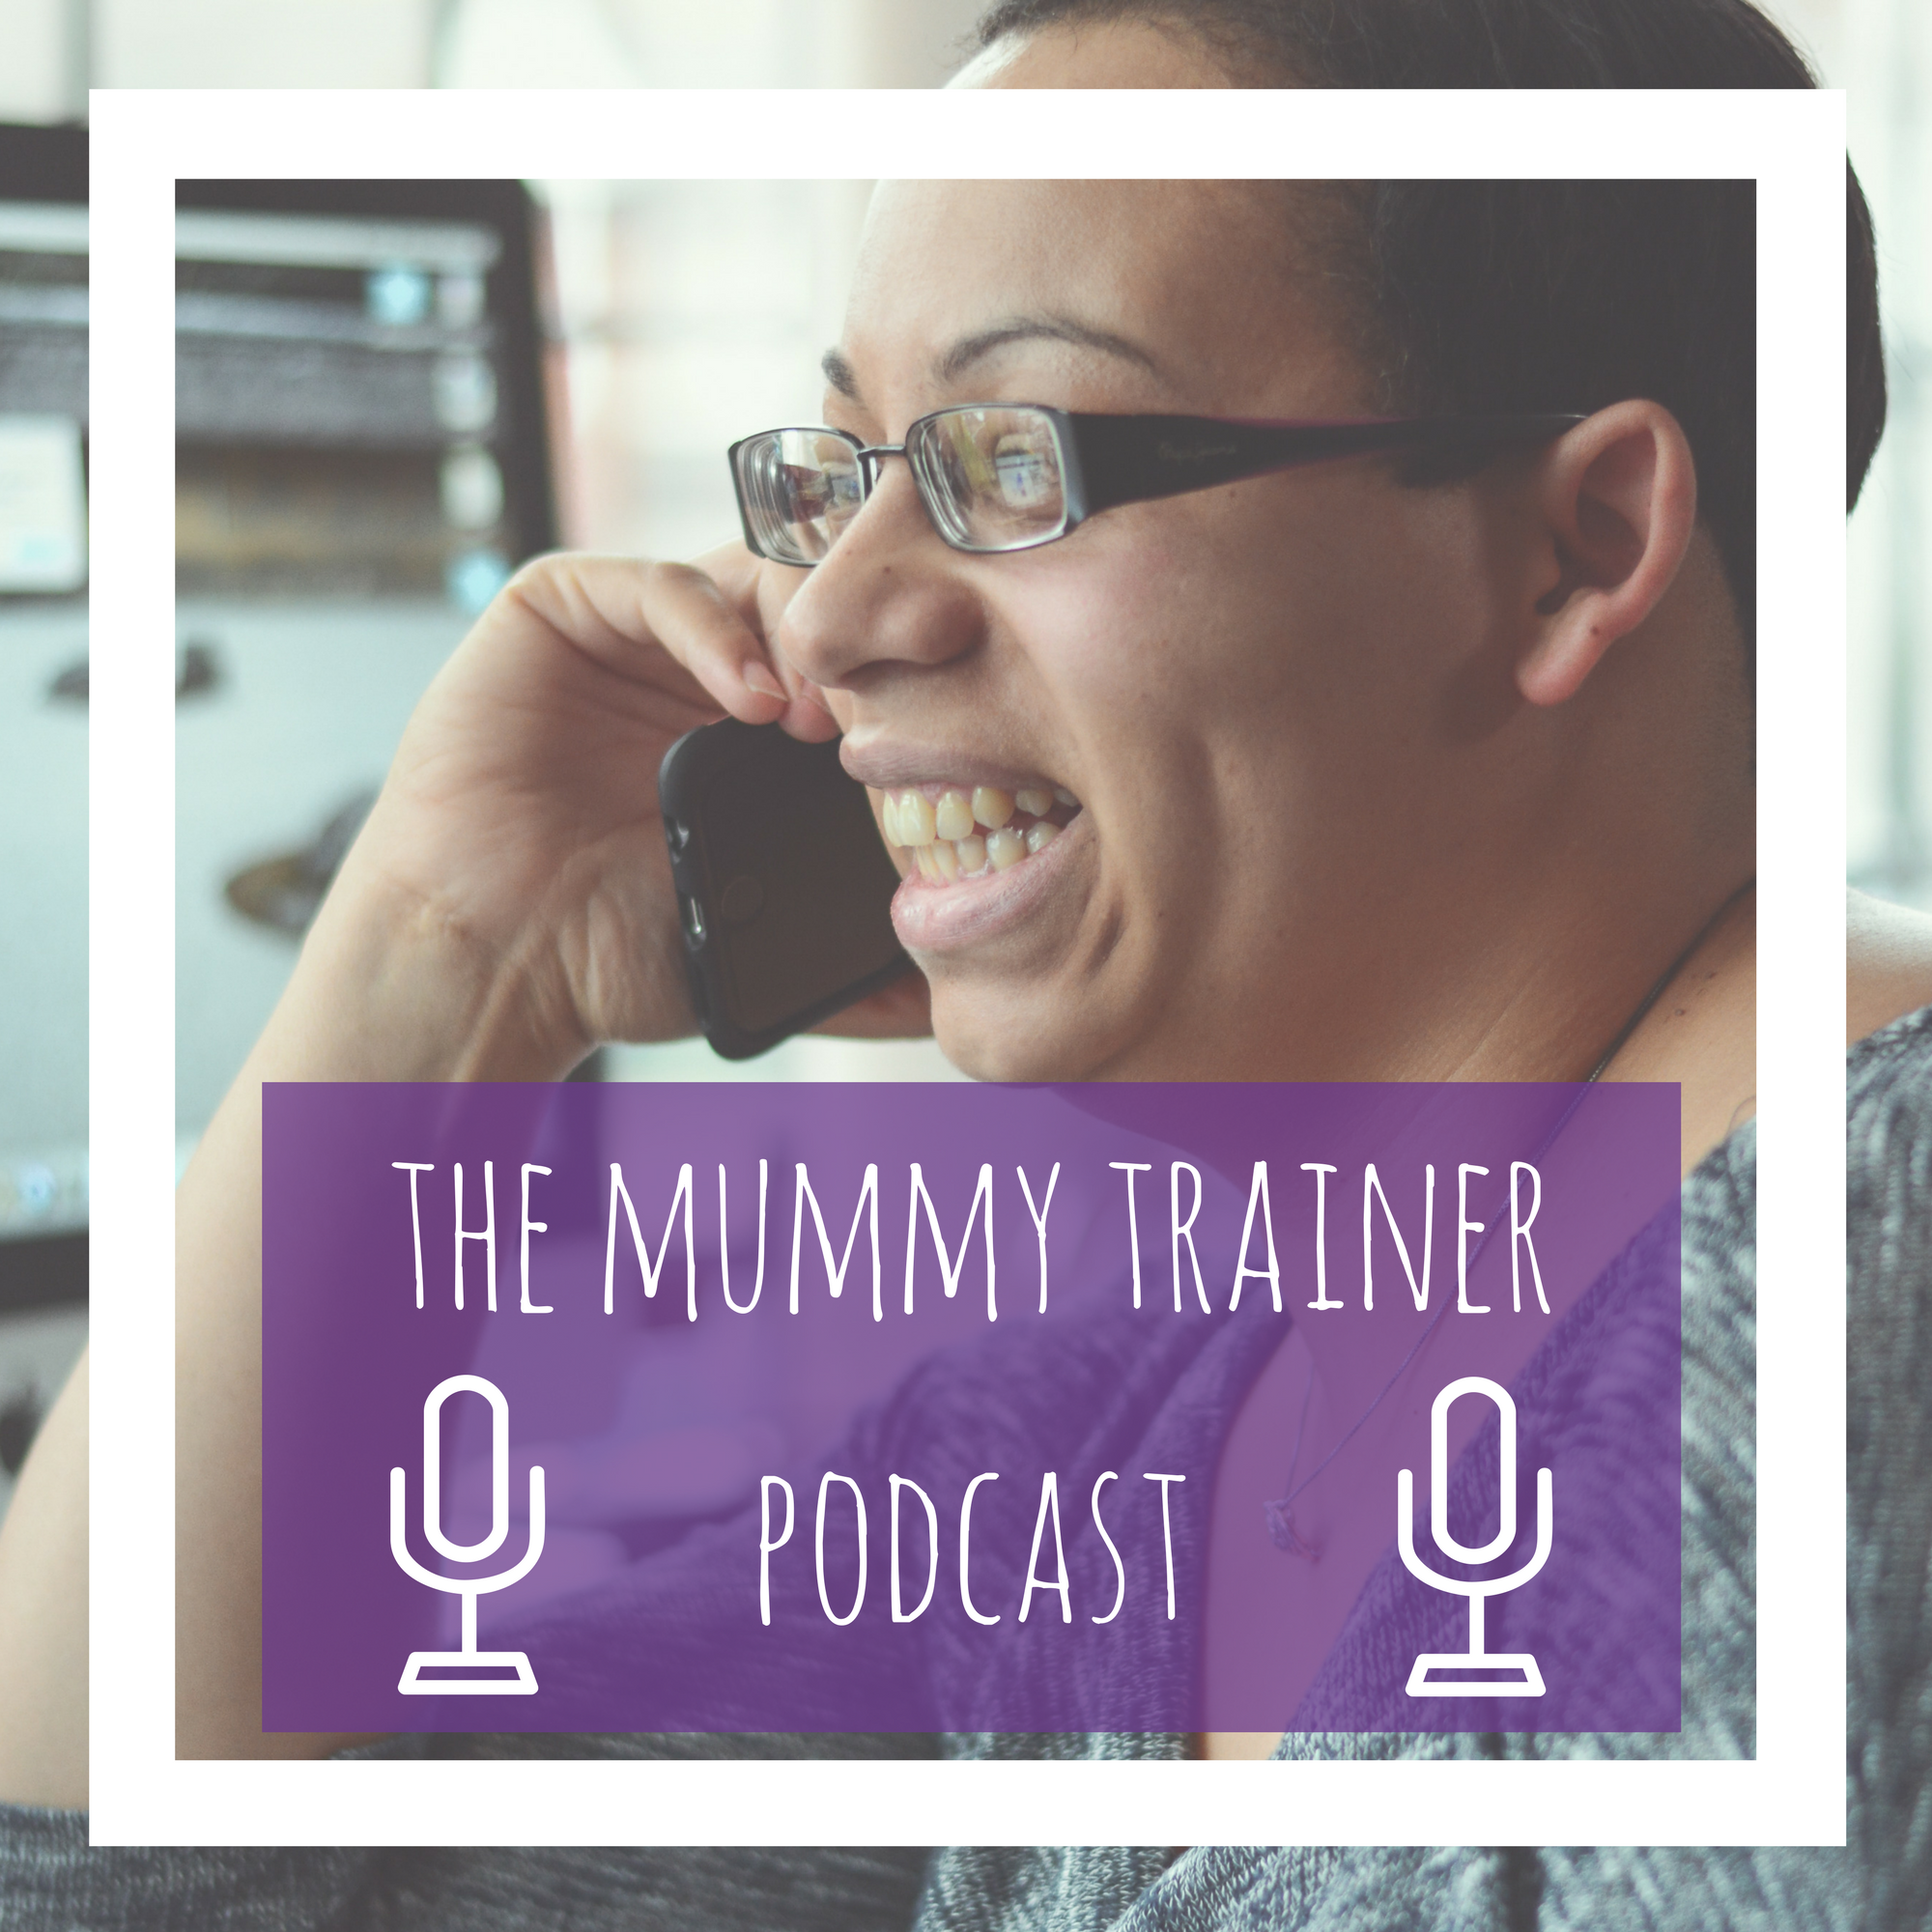 The Mummy Trainer Podcast show art